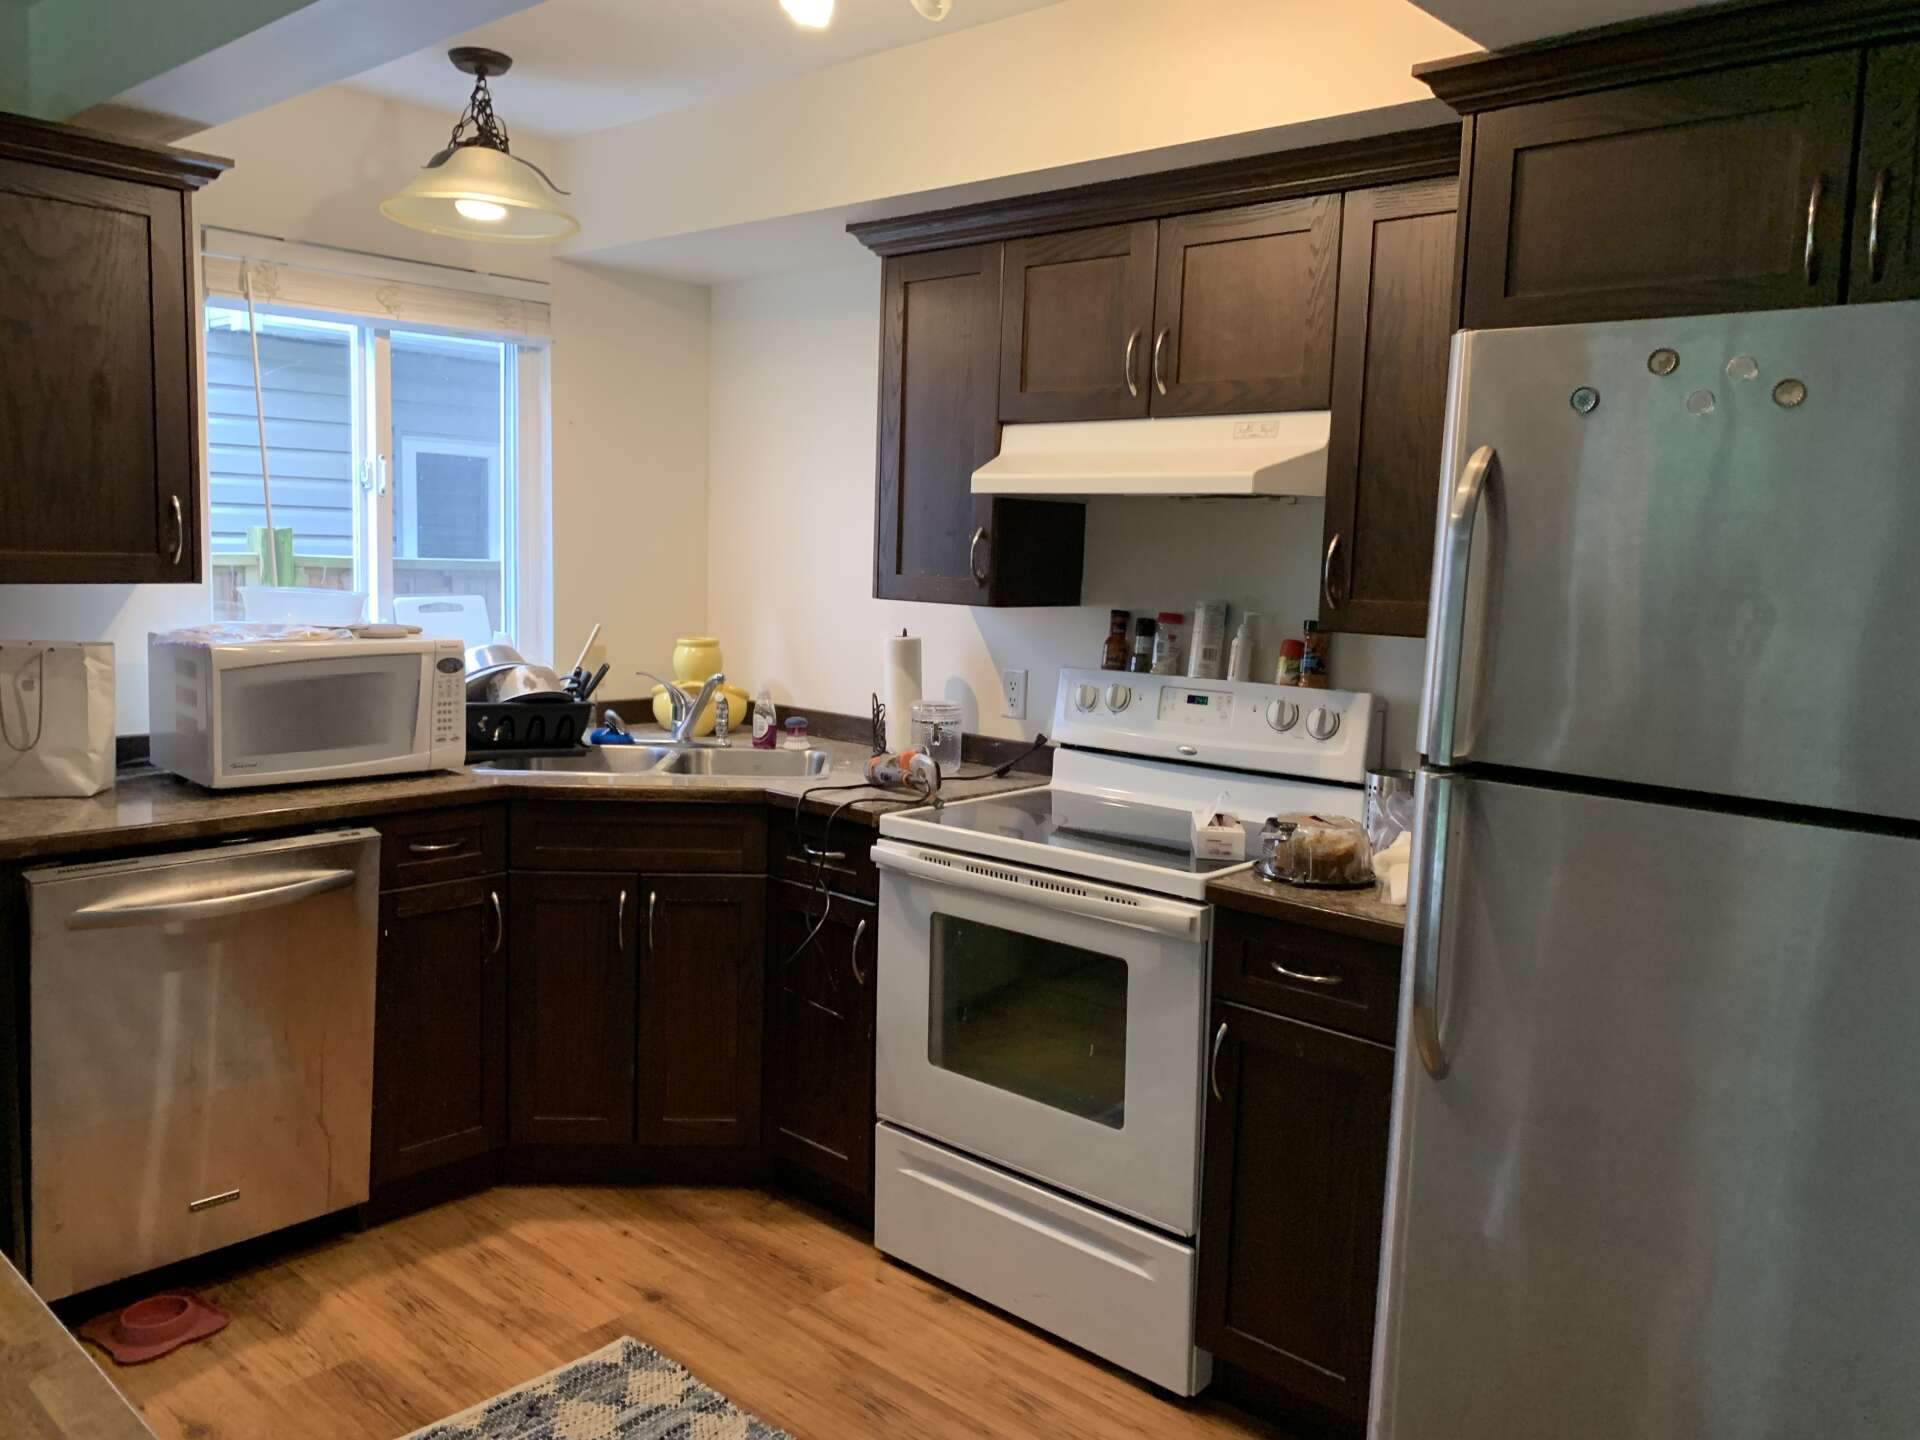 One Week To Overhaul A Kitchen On Budget I Sustainable Solutions